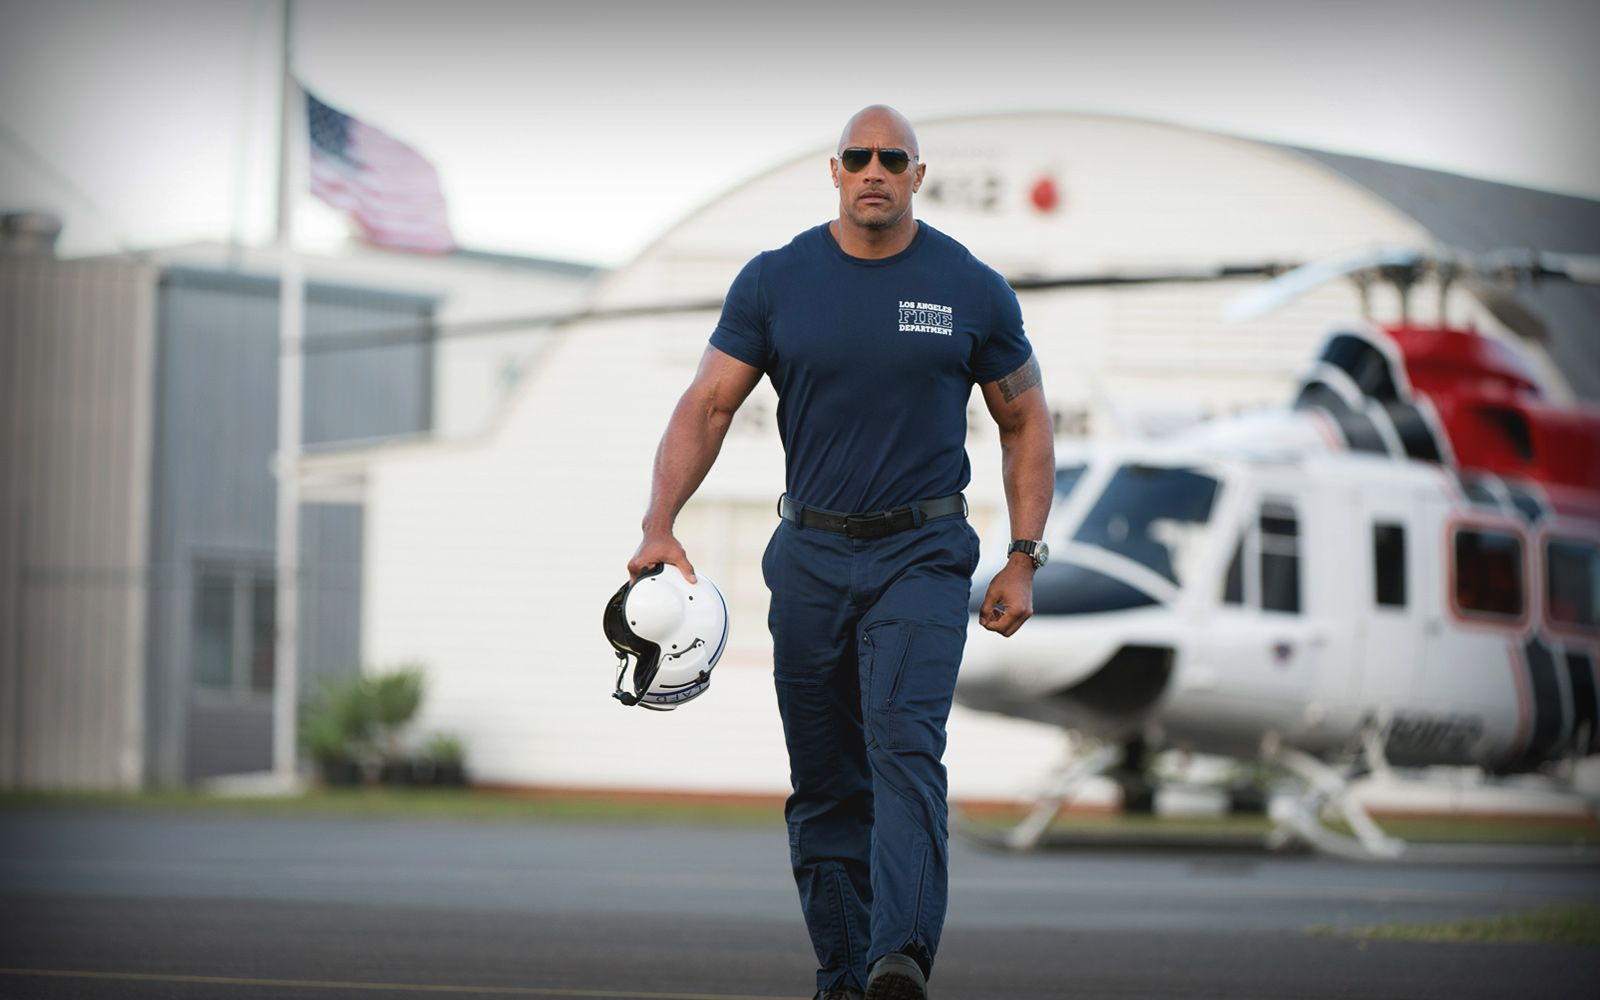 San Andreas – Official Movie Site – Trailer, Film Synopsis